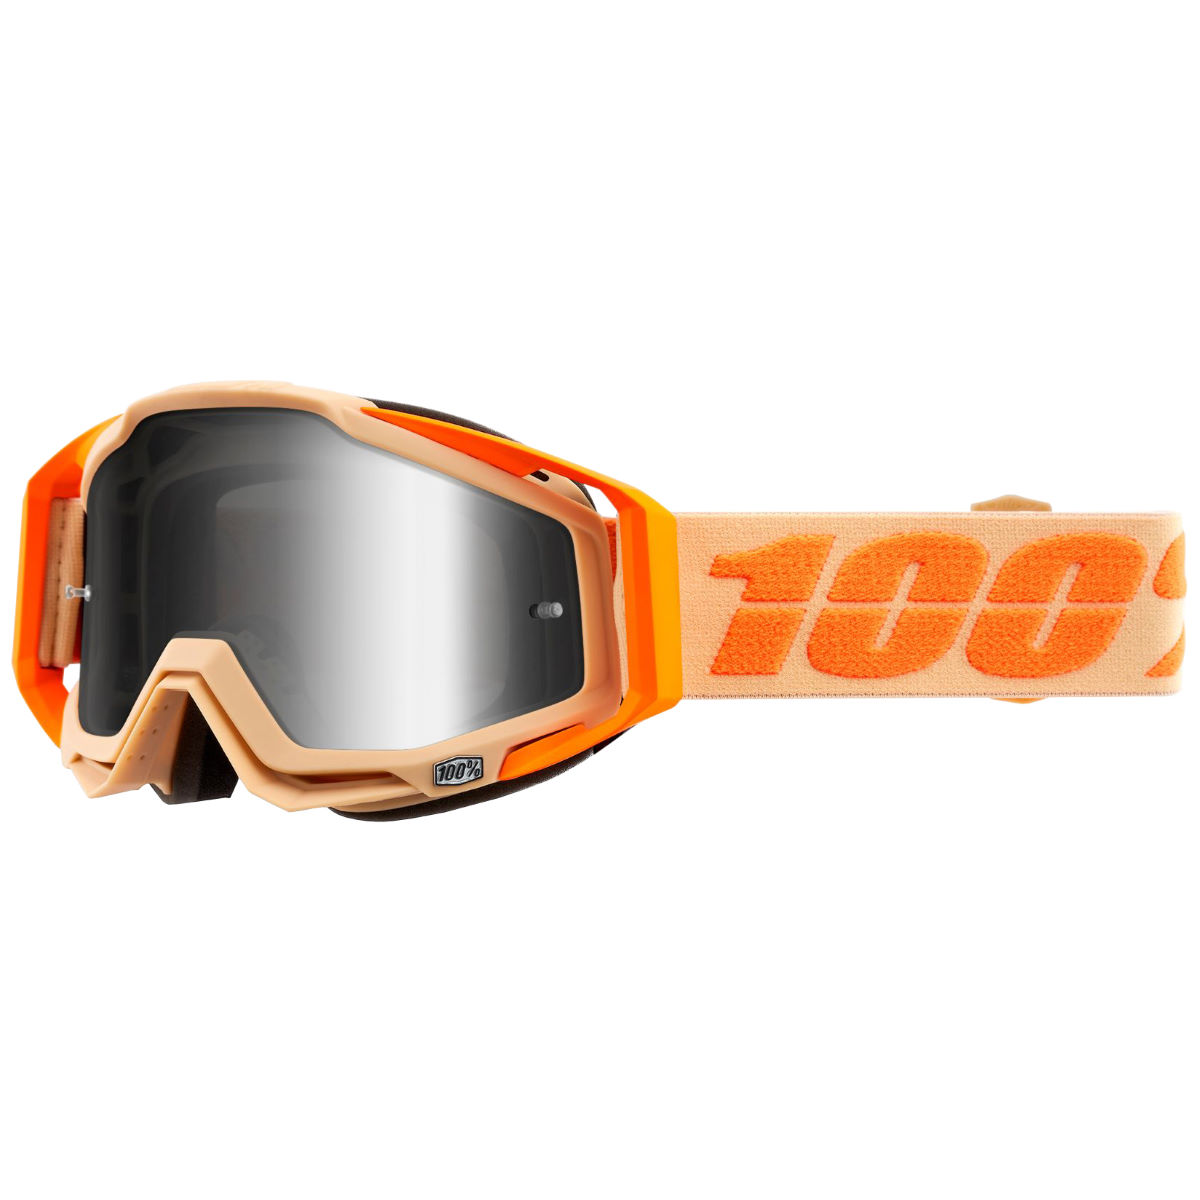 100% Racecraft Goggle Silver Mirror Lens - One Size Orange